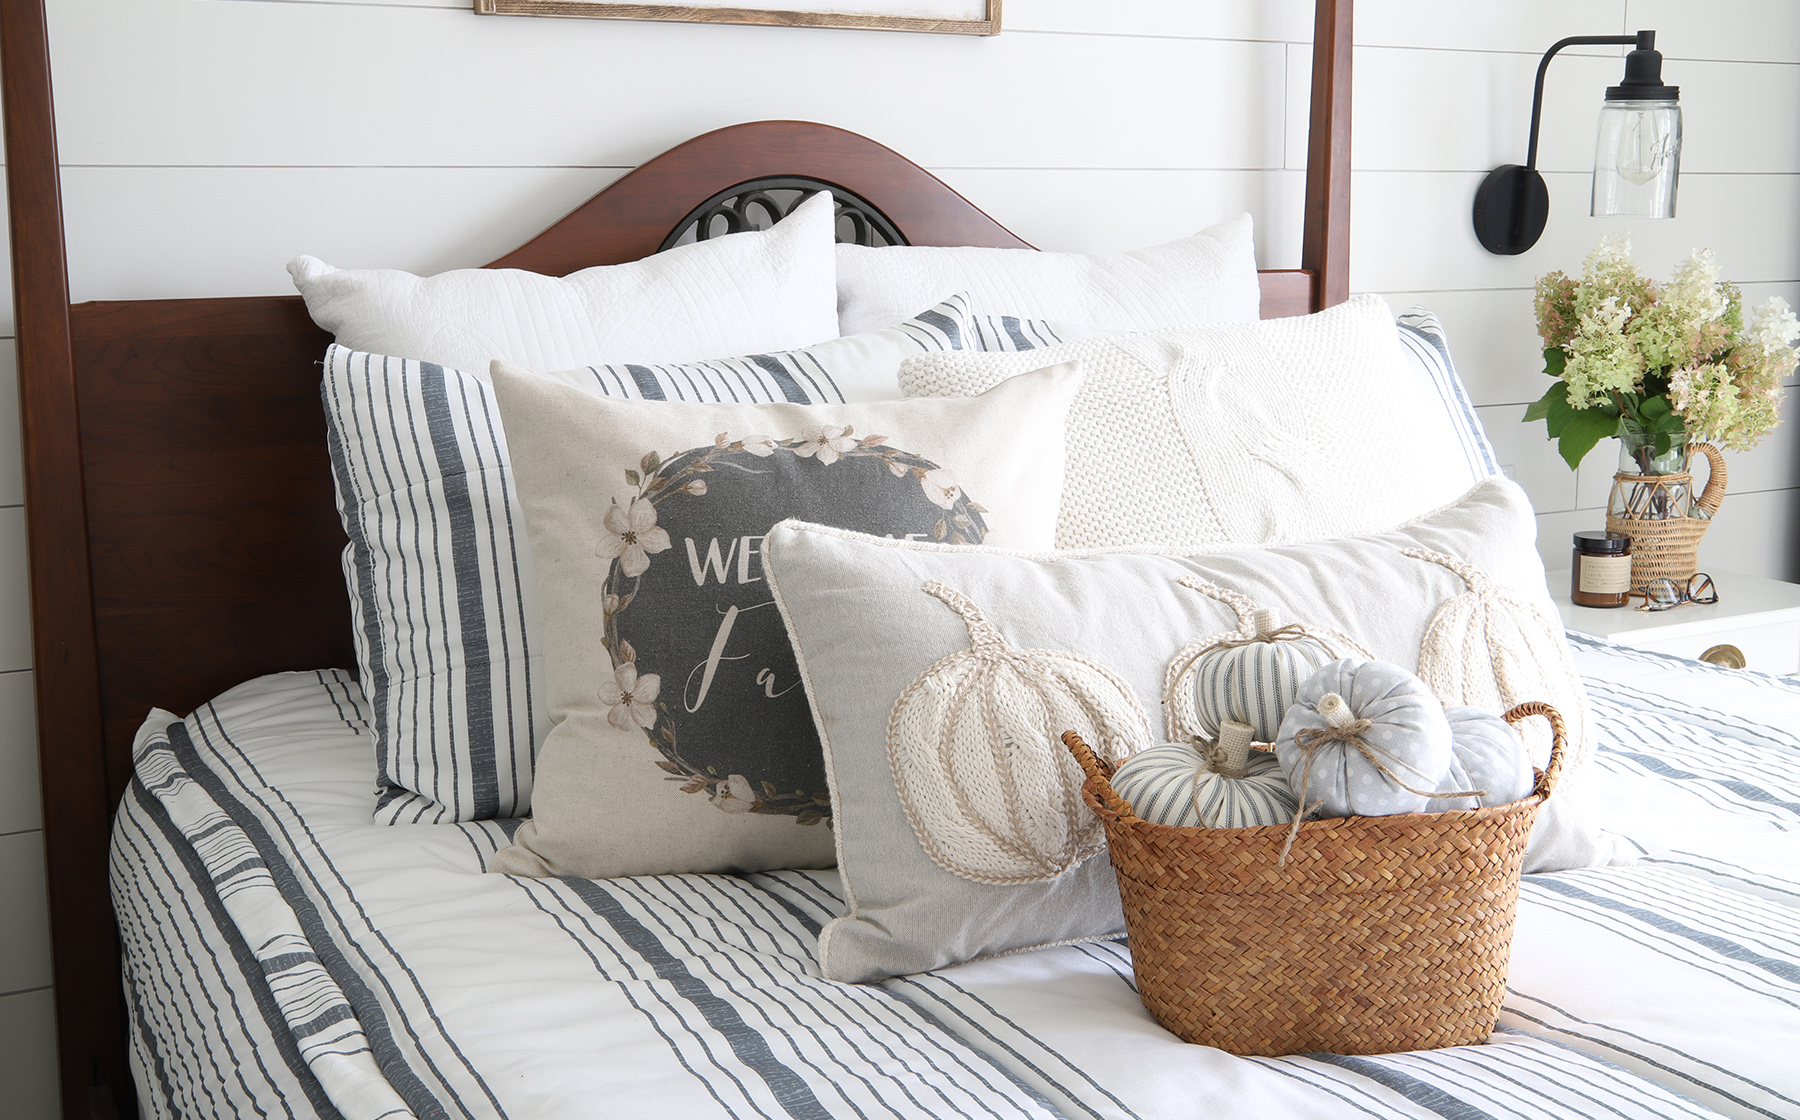 Light and Airy Fall Bedroom Decor - Willow Bloom Home